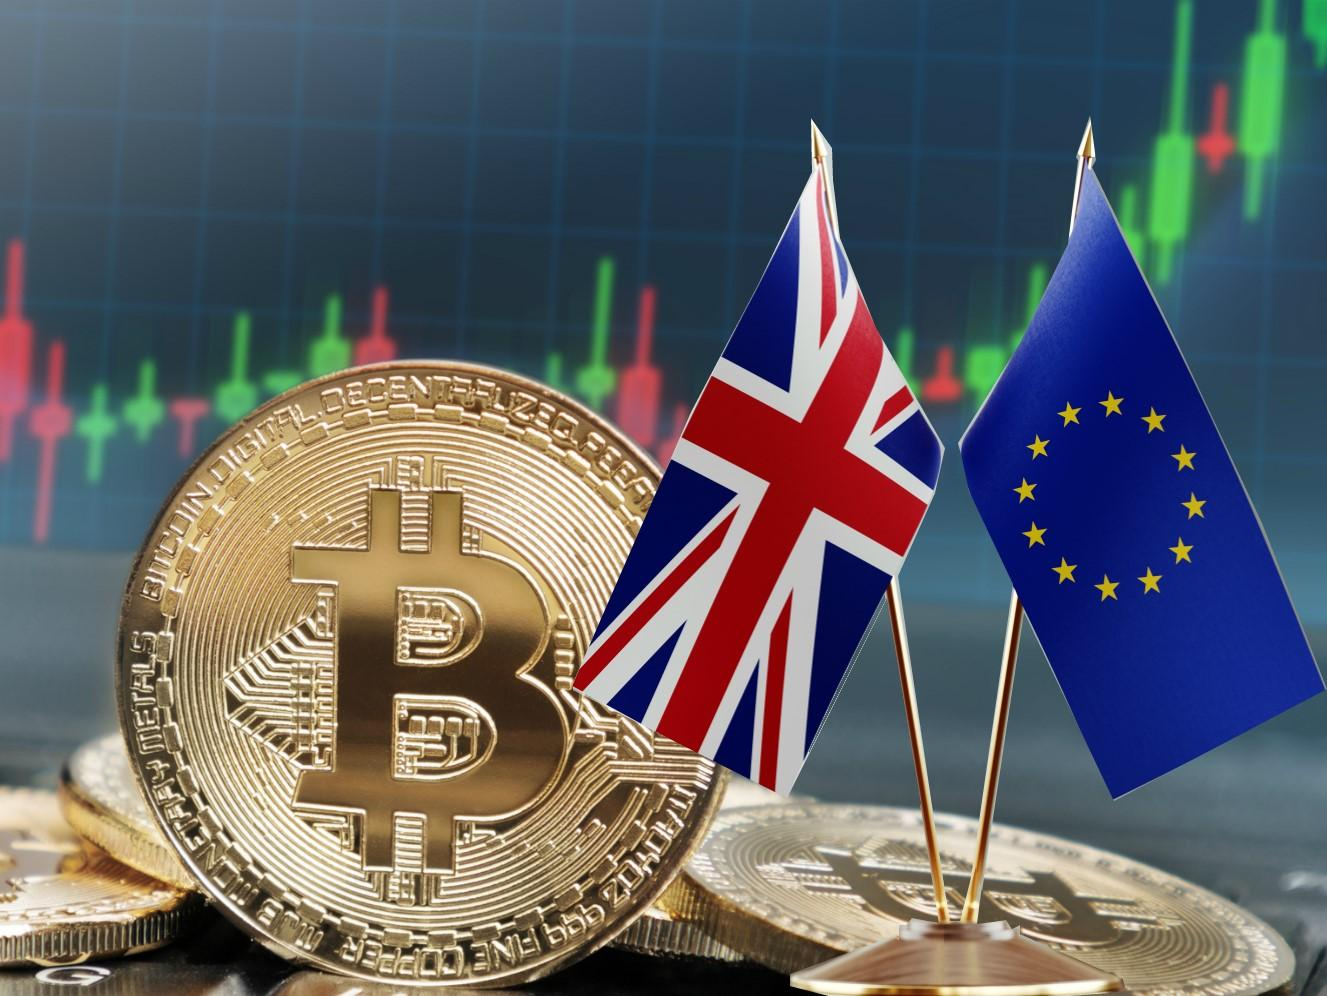 Bitcoin price: No-deal Brexit 'will see cryptocurrency value hit record high'